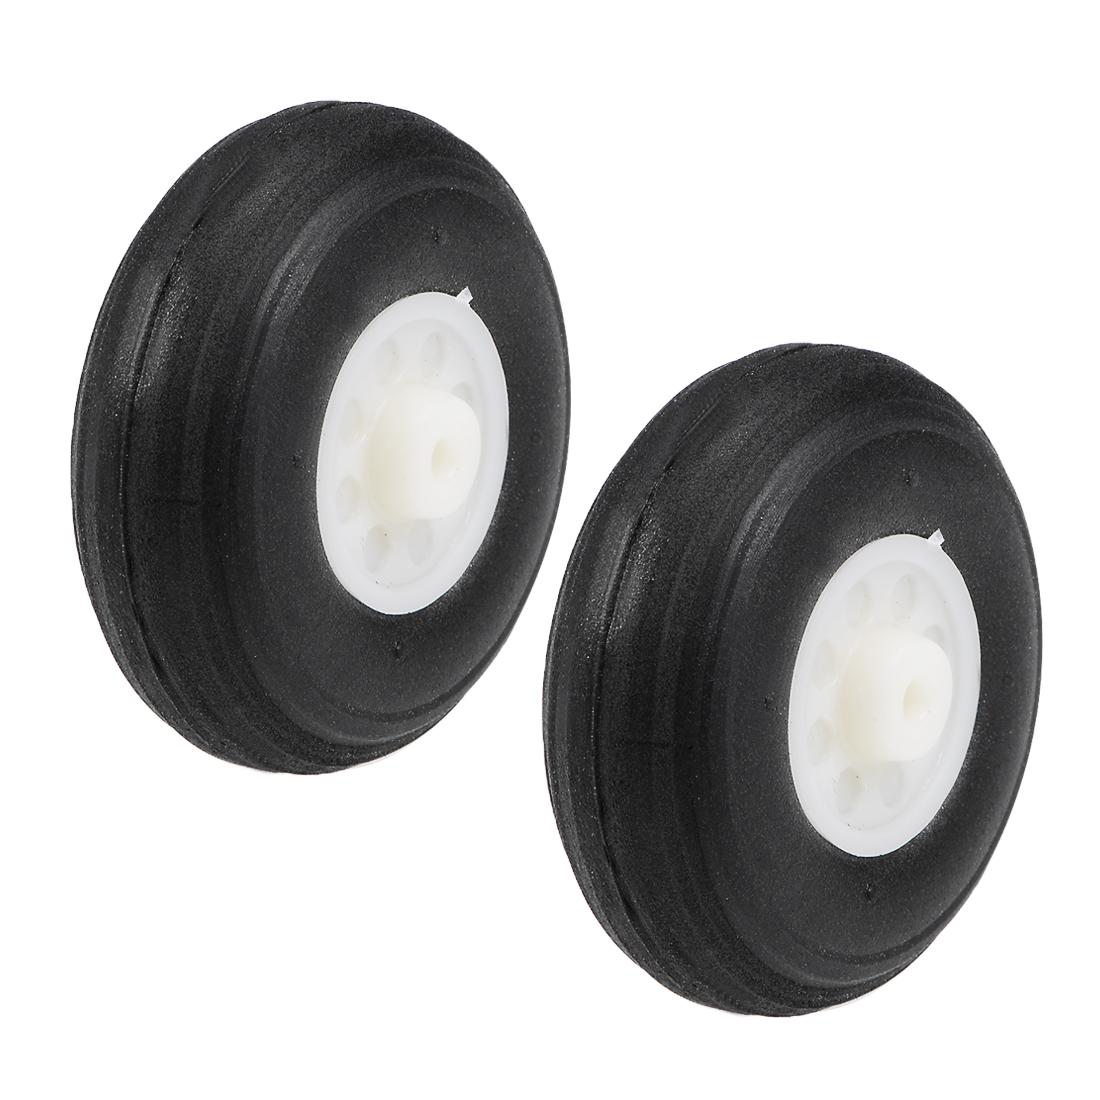 "Tire and Wheel Sets for RC Airplane,PU Sponge Tire with Plastic Hub,1.5"" 2pcs"